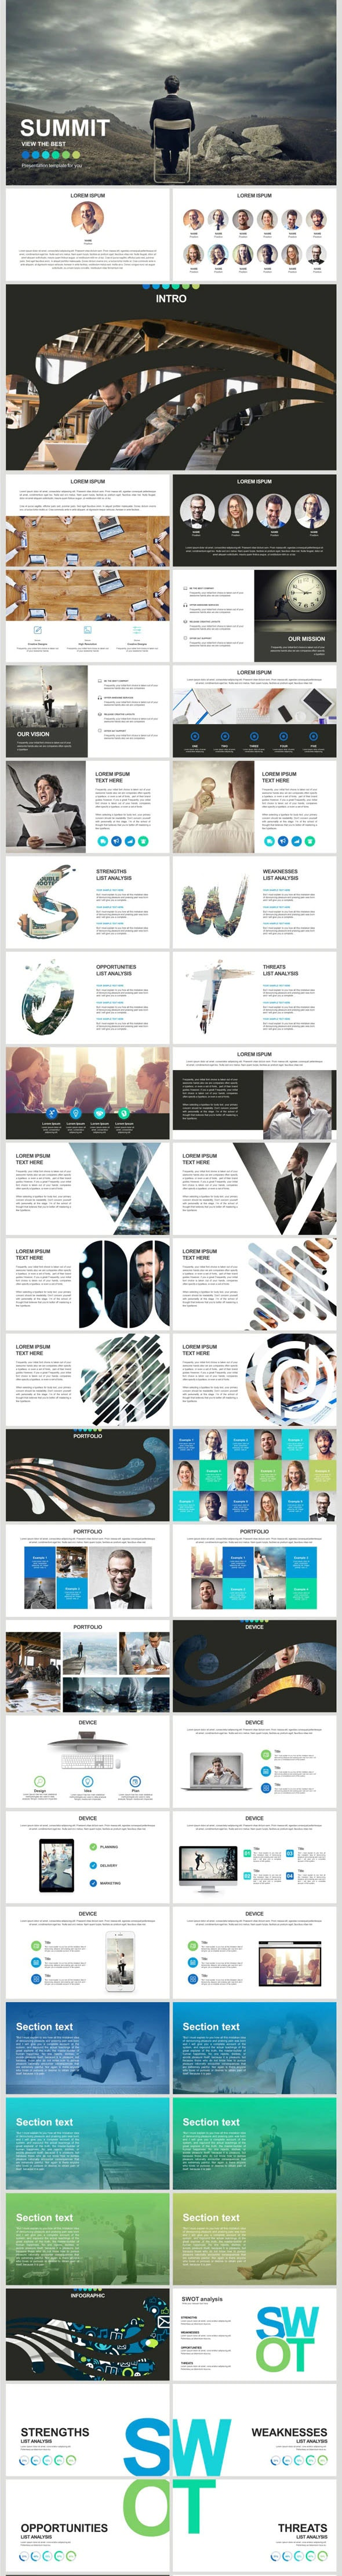 Business Summit - Business PowerPoint Templates